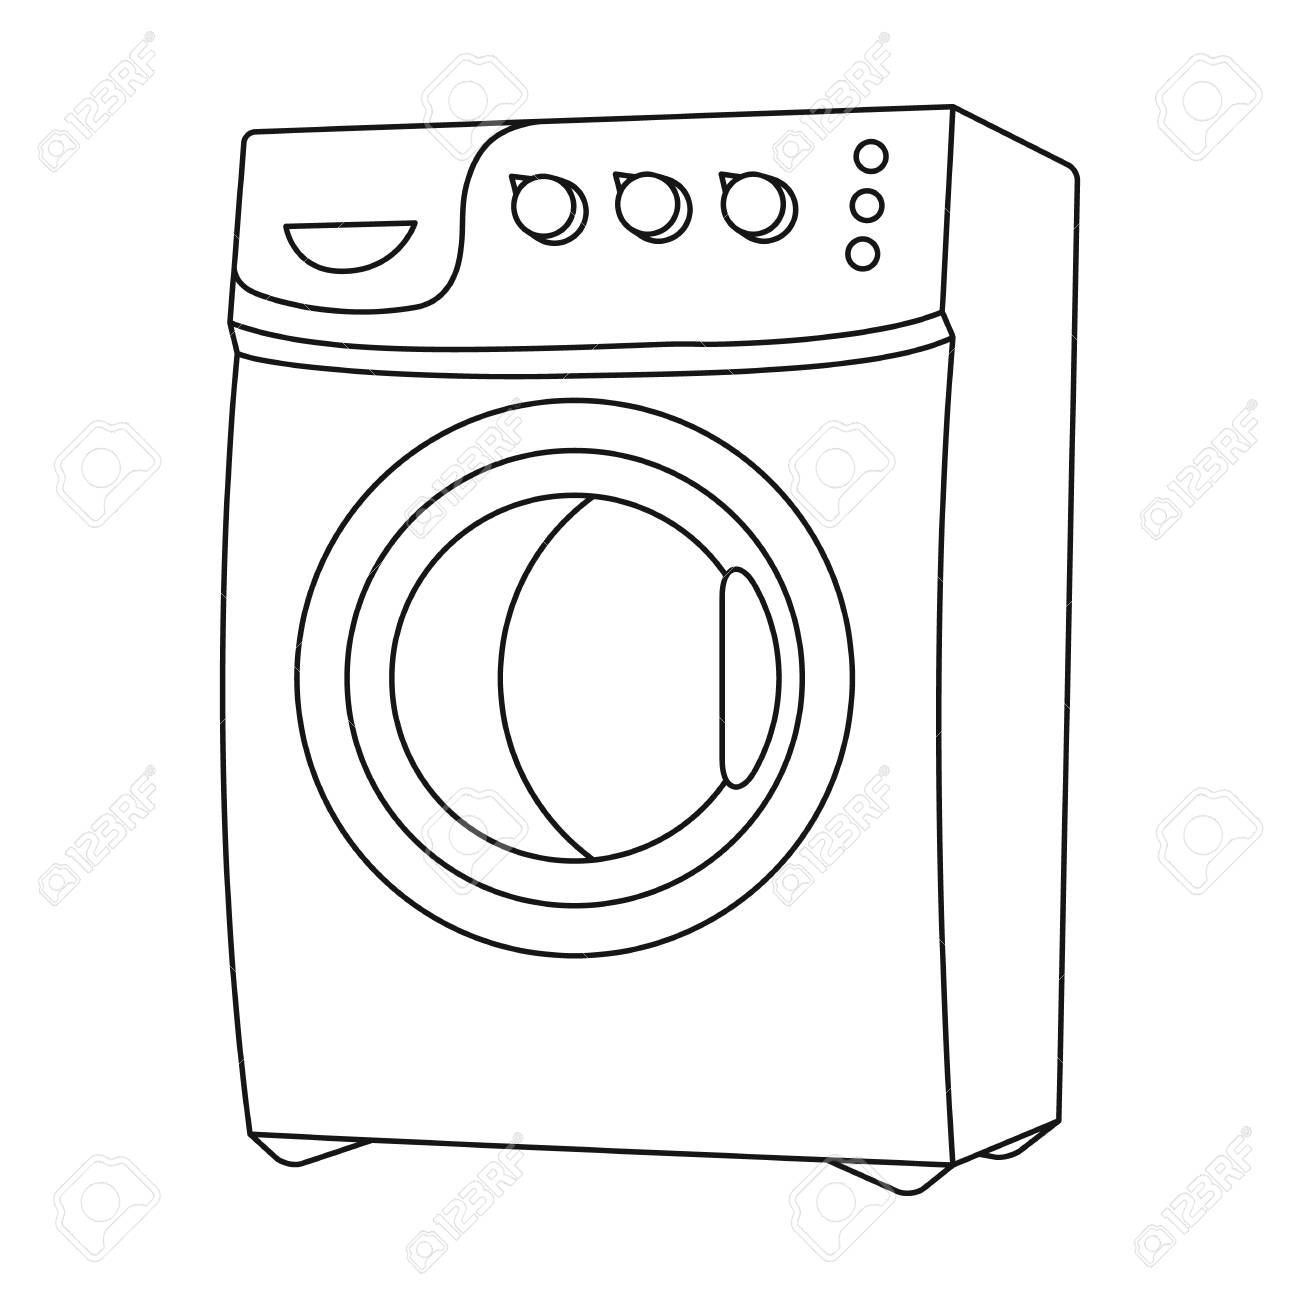 Dryer clipart washing machine. Drawing at getdrawings com